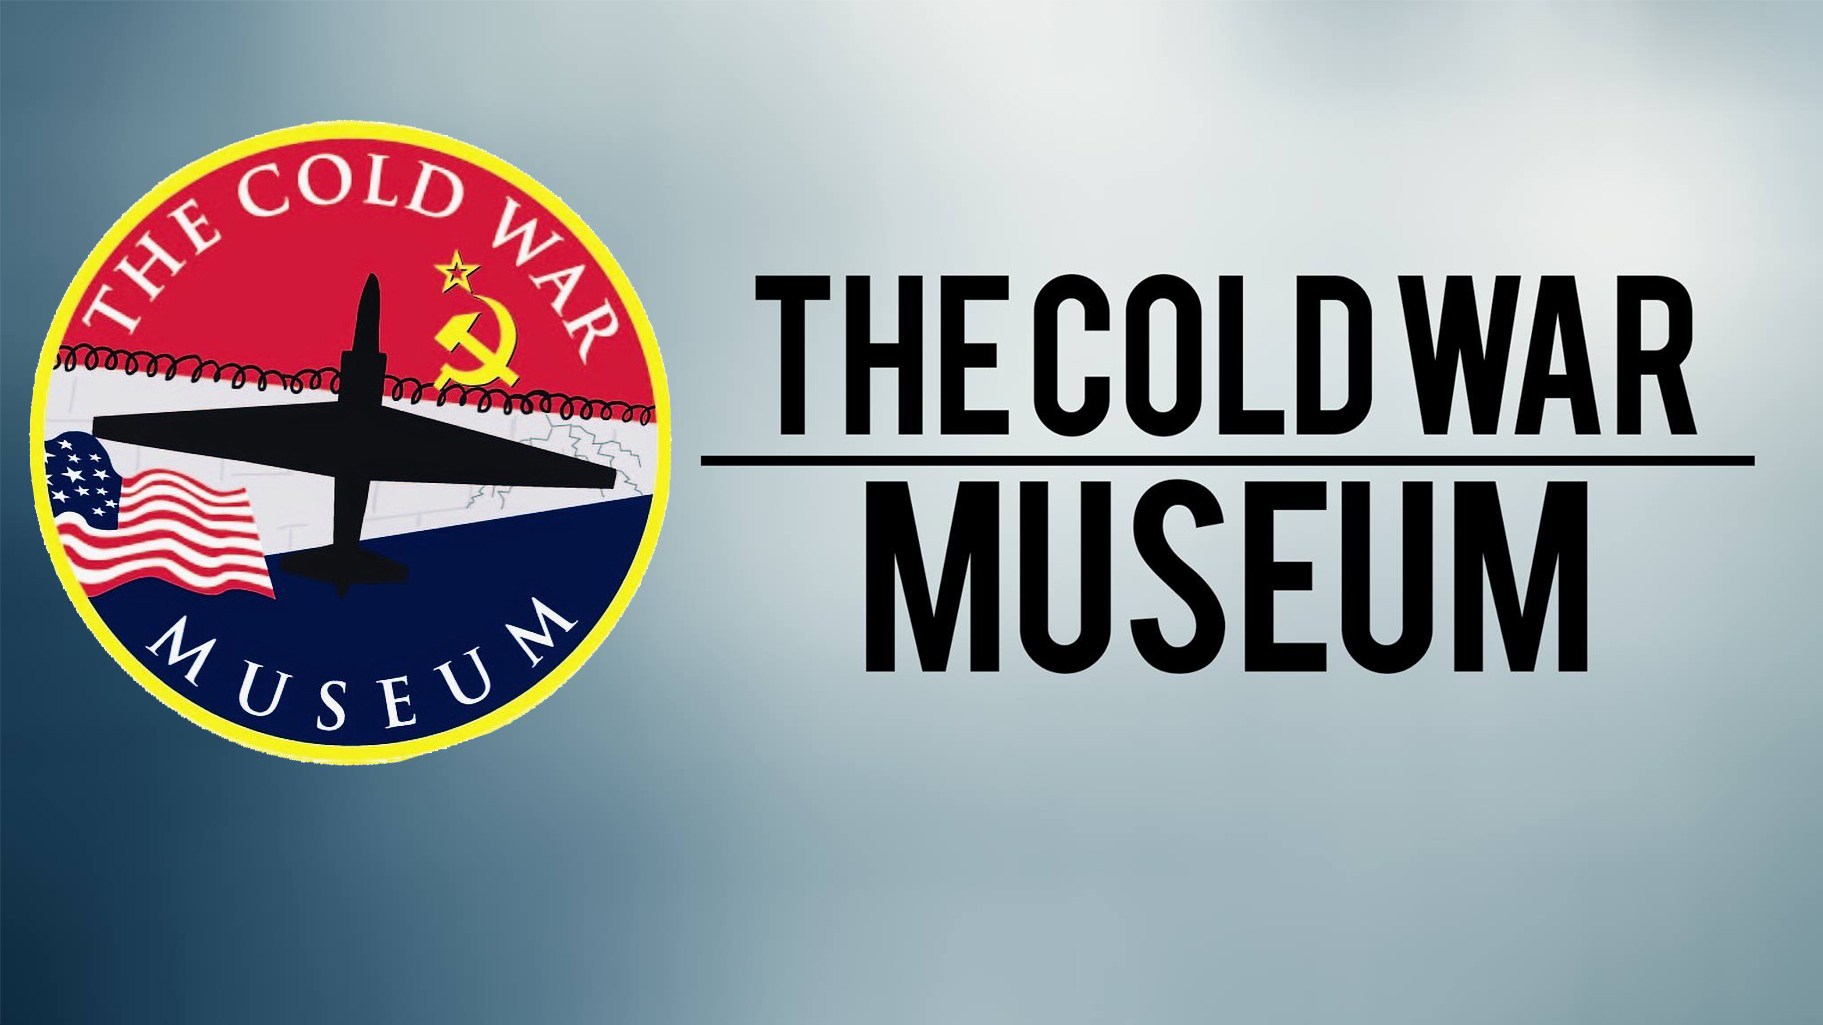 The Cold War Museum